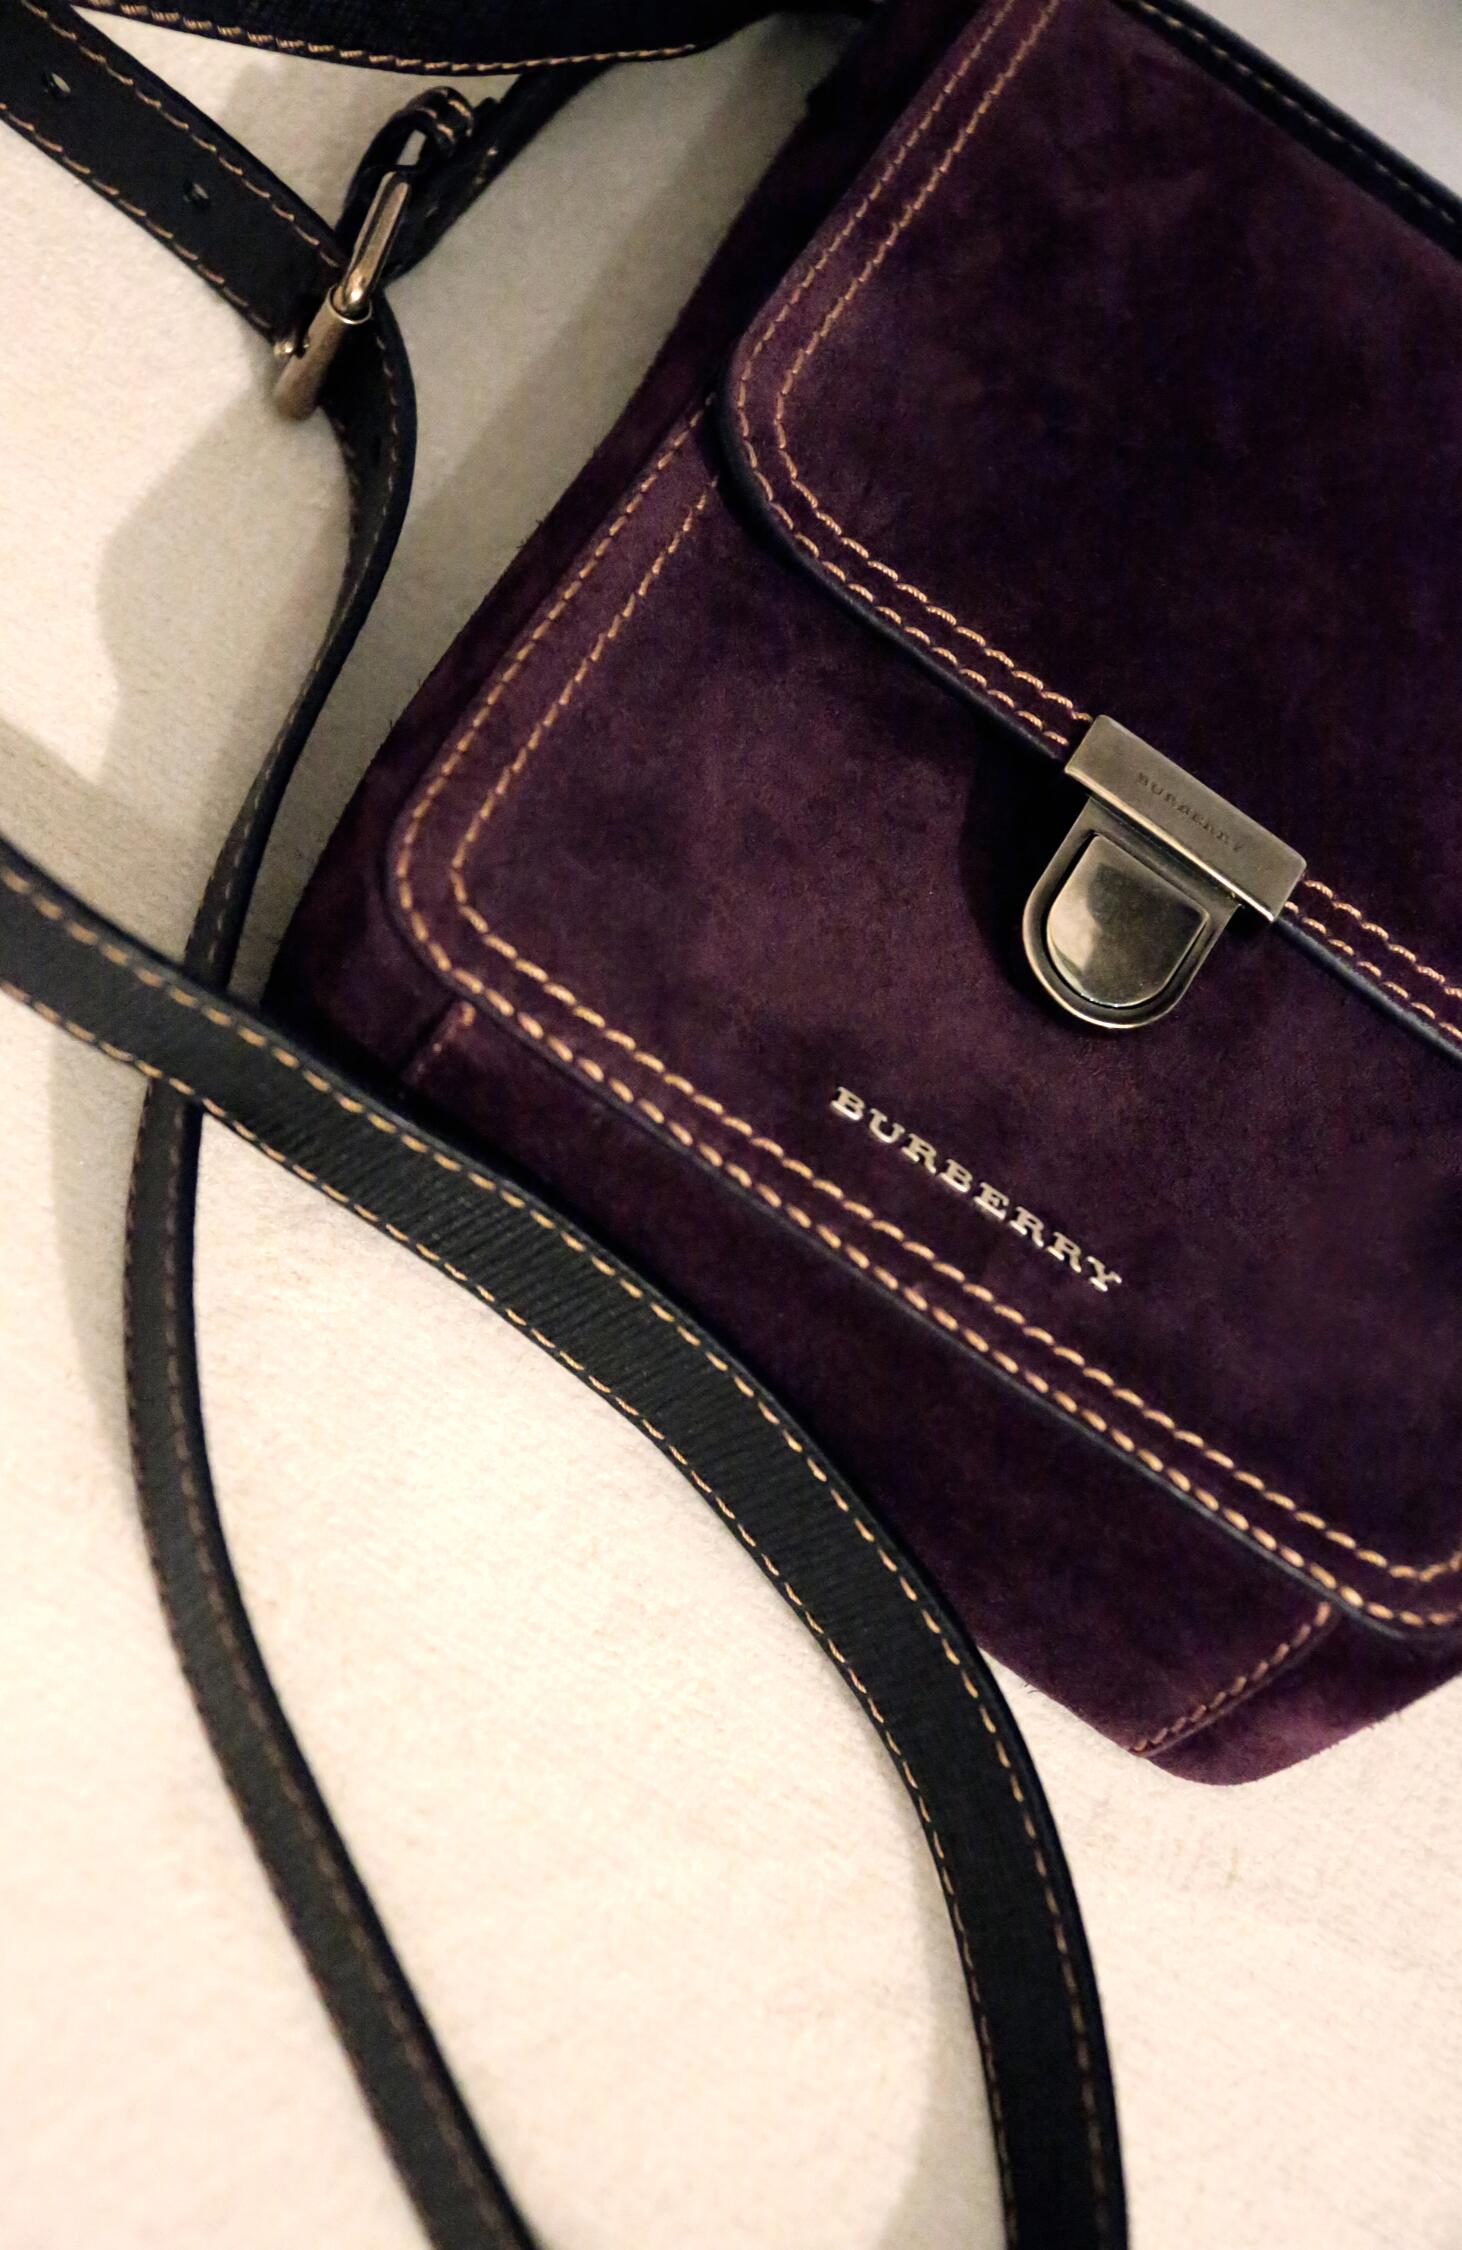 Backstage Man Burberry Detail Bag